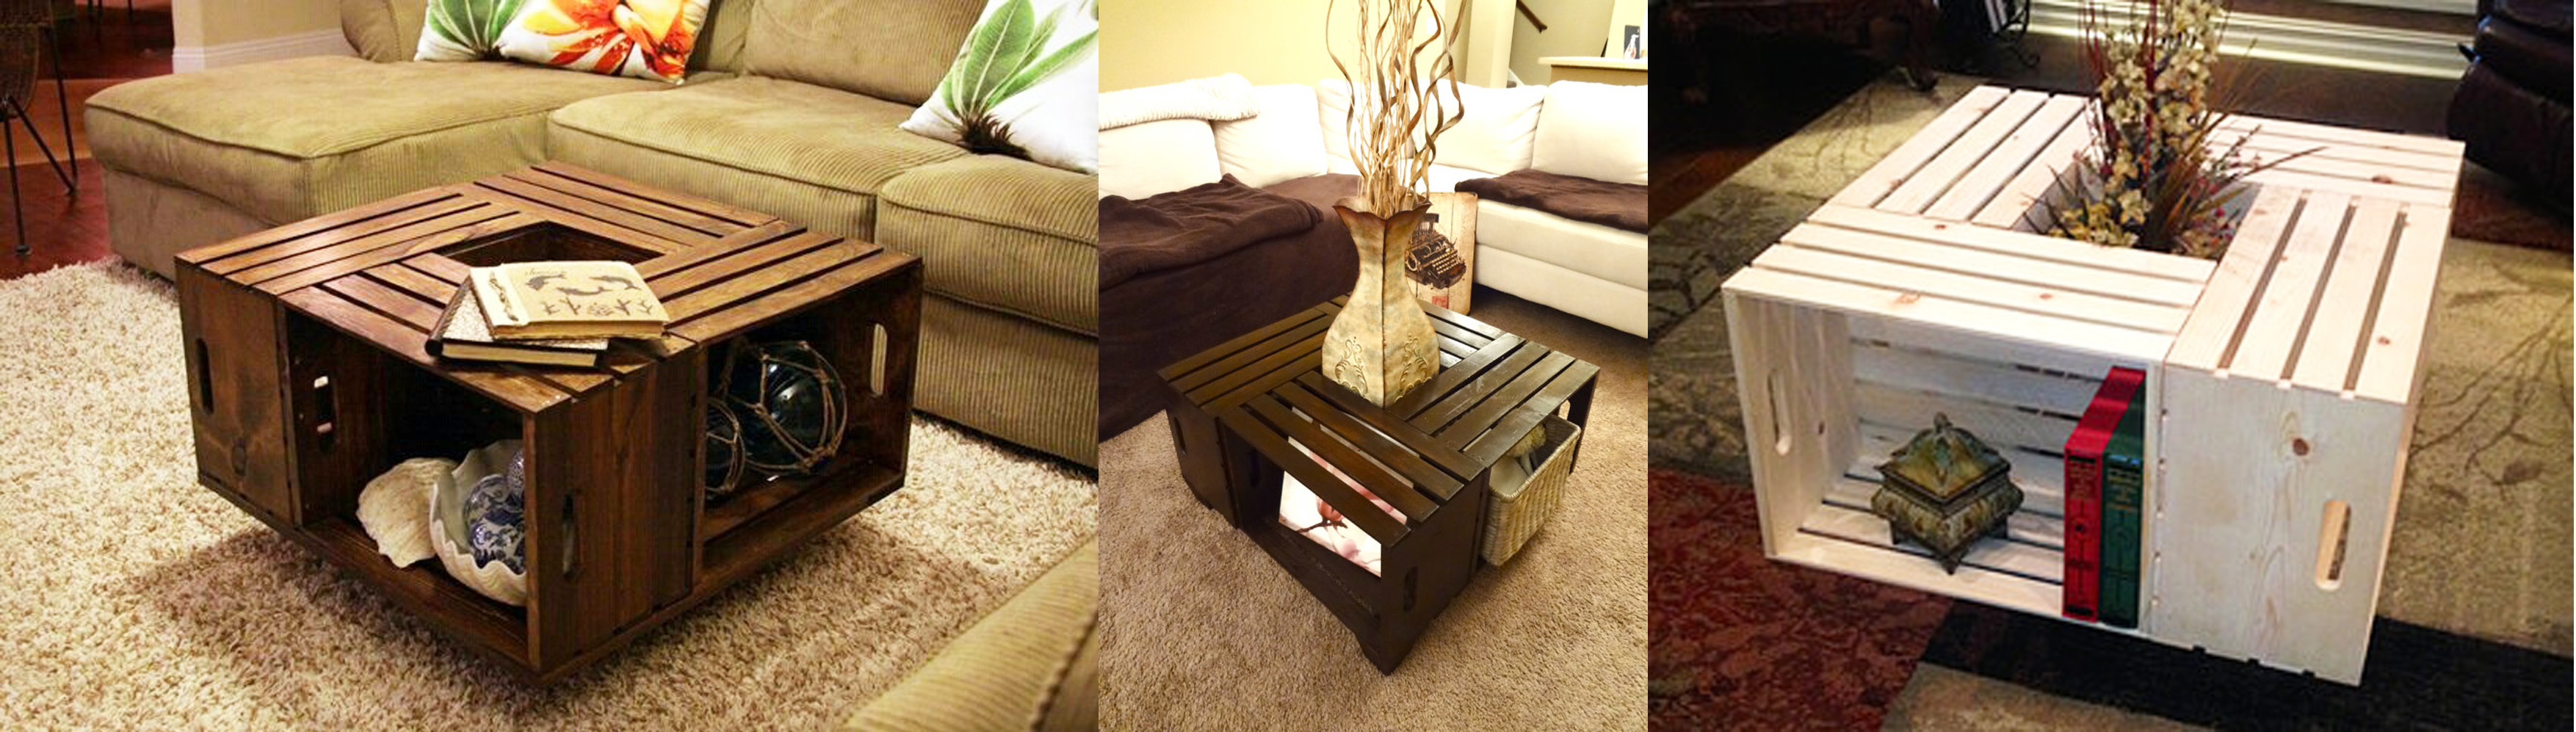 Pallet Coffee Table DIY – Cheap and Creative Furniture